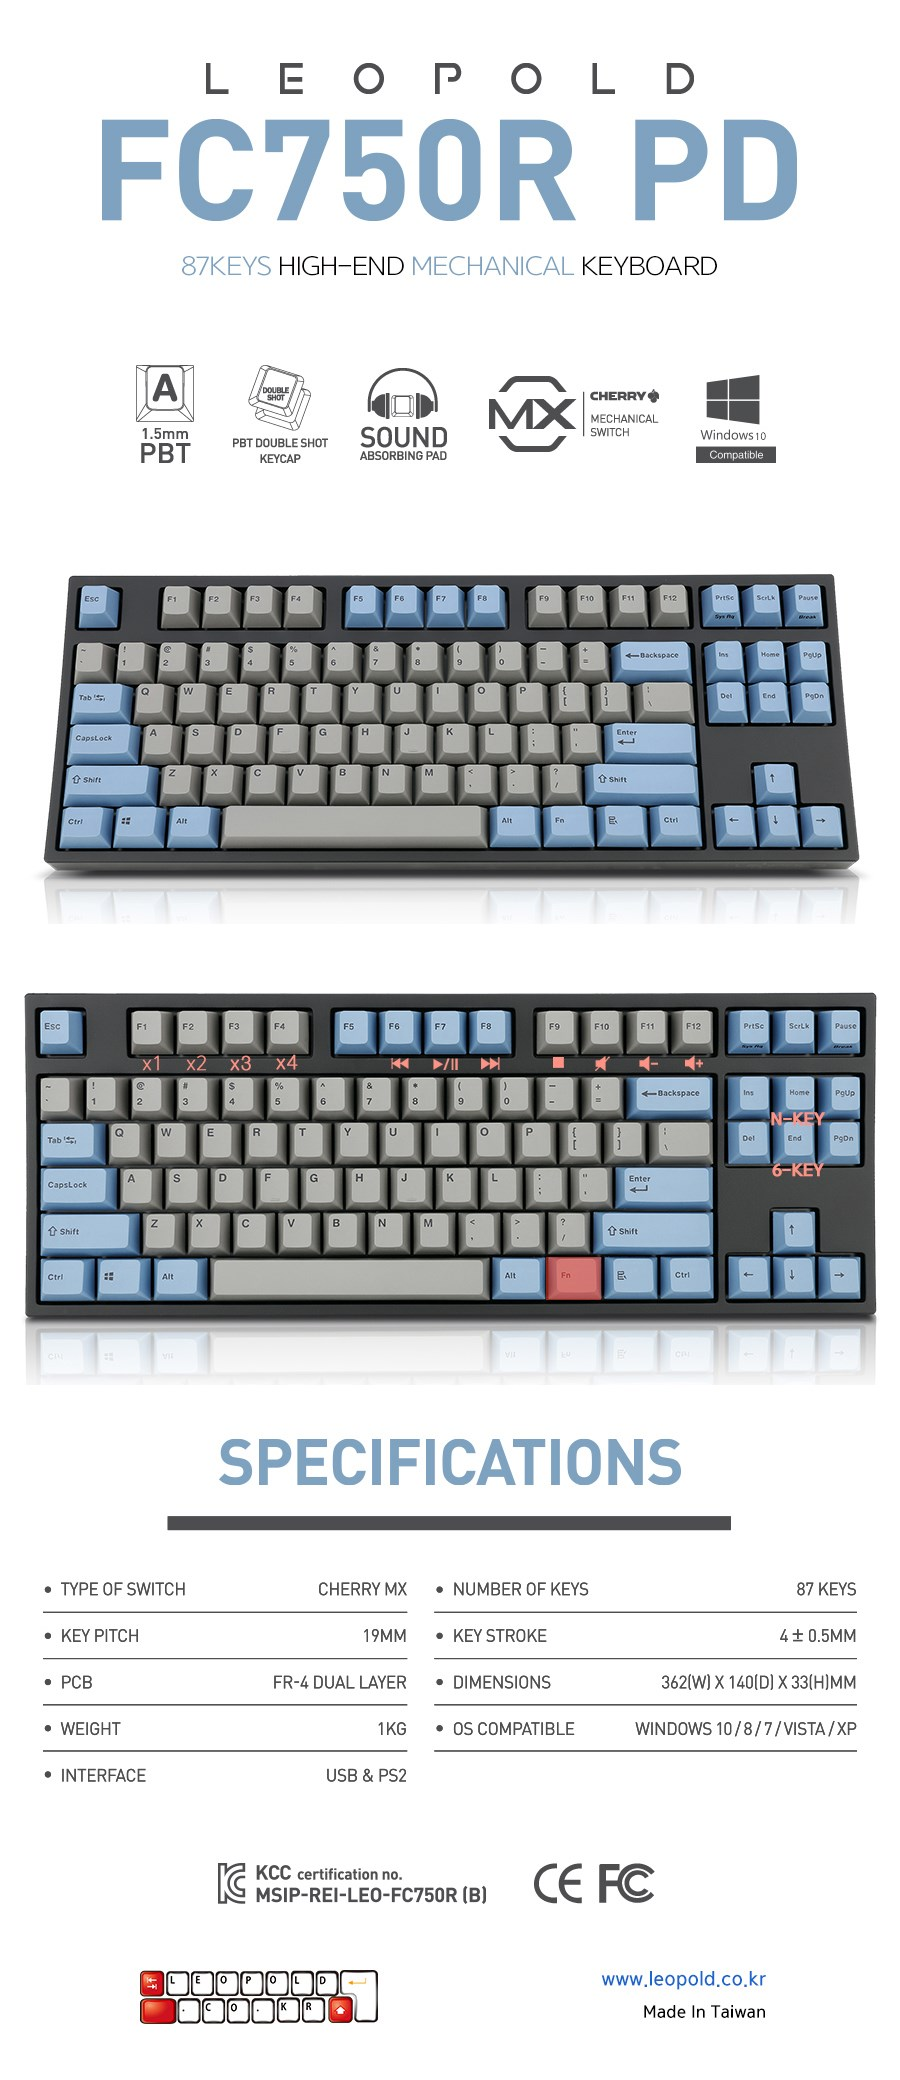 Leopold FC750R PD Blue/Grey TKL Mechanical Keyboard - Cherry MX Brown - Overview 1